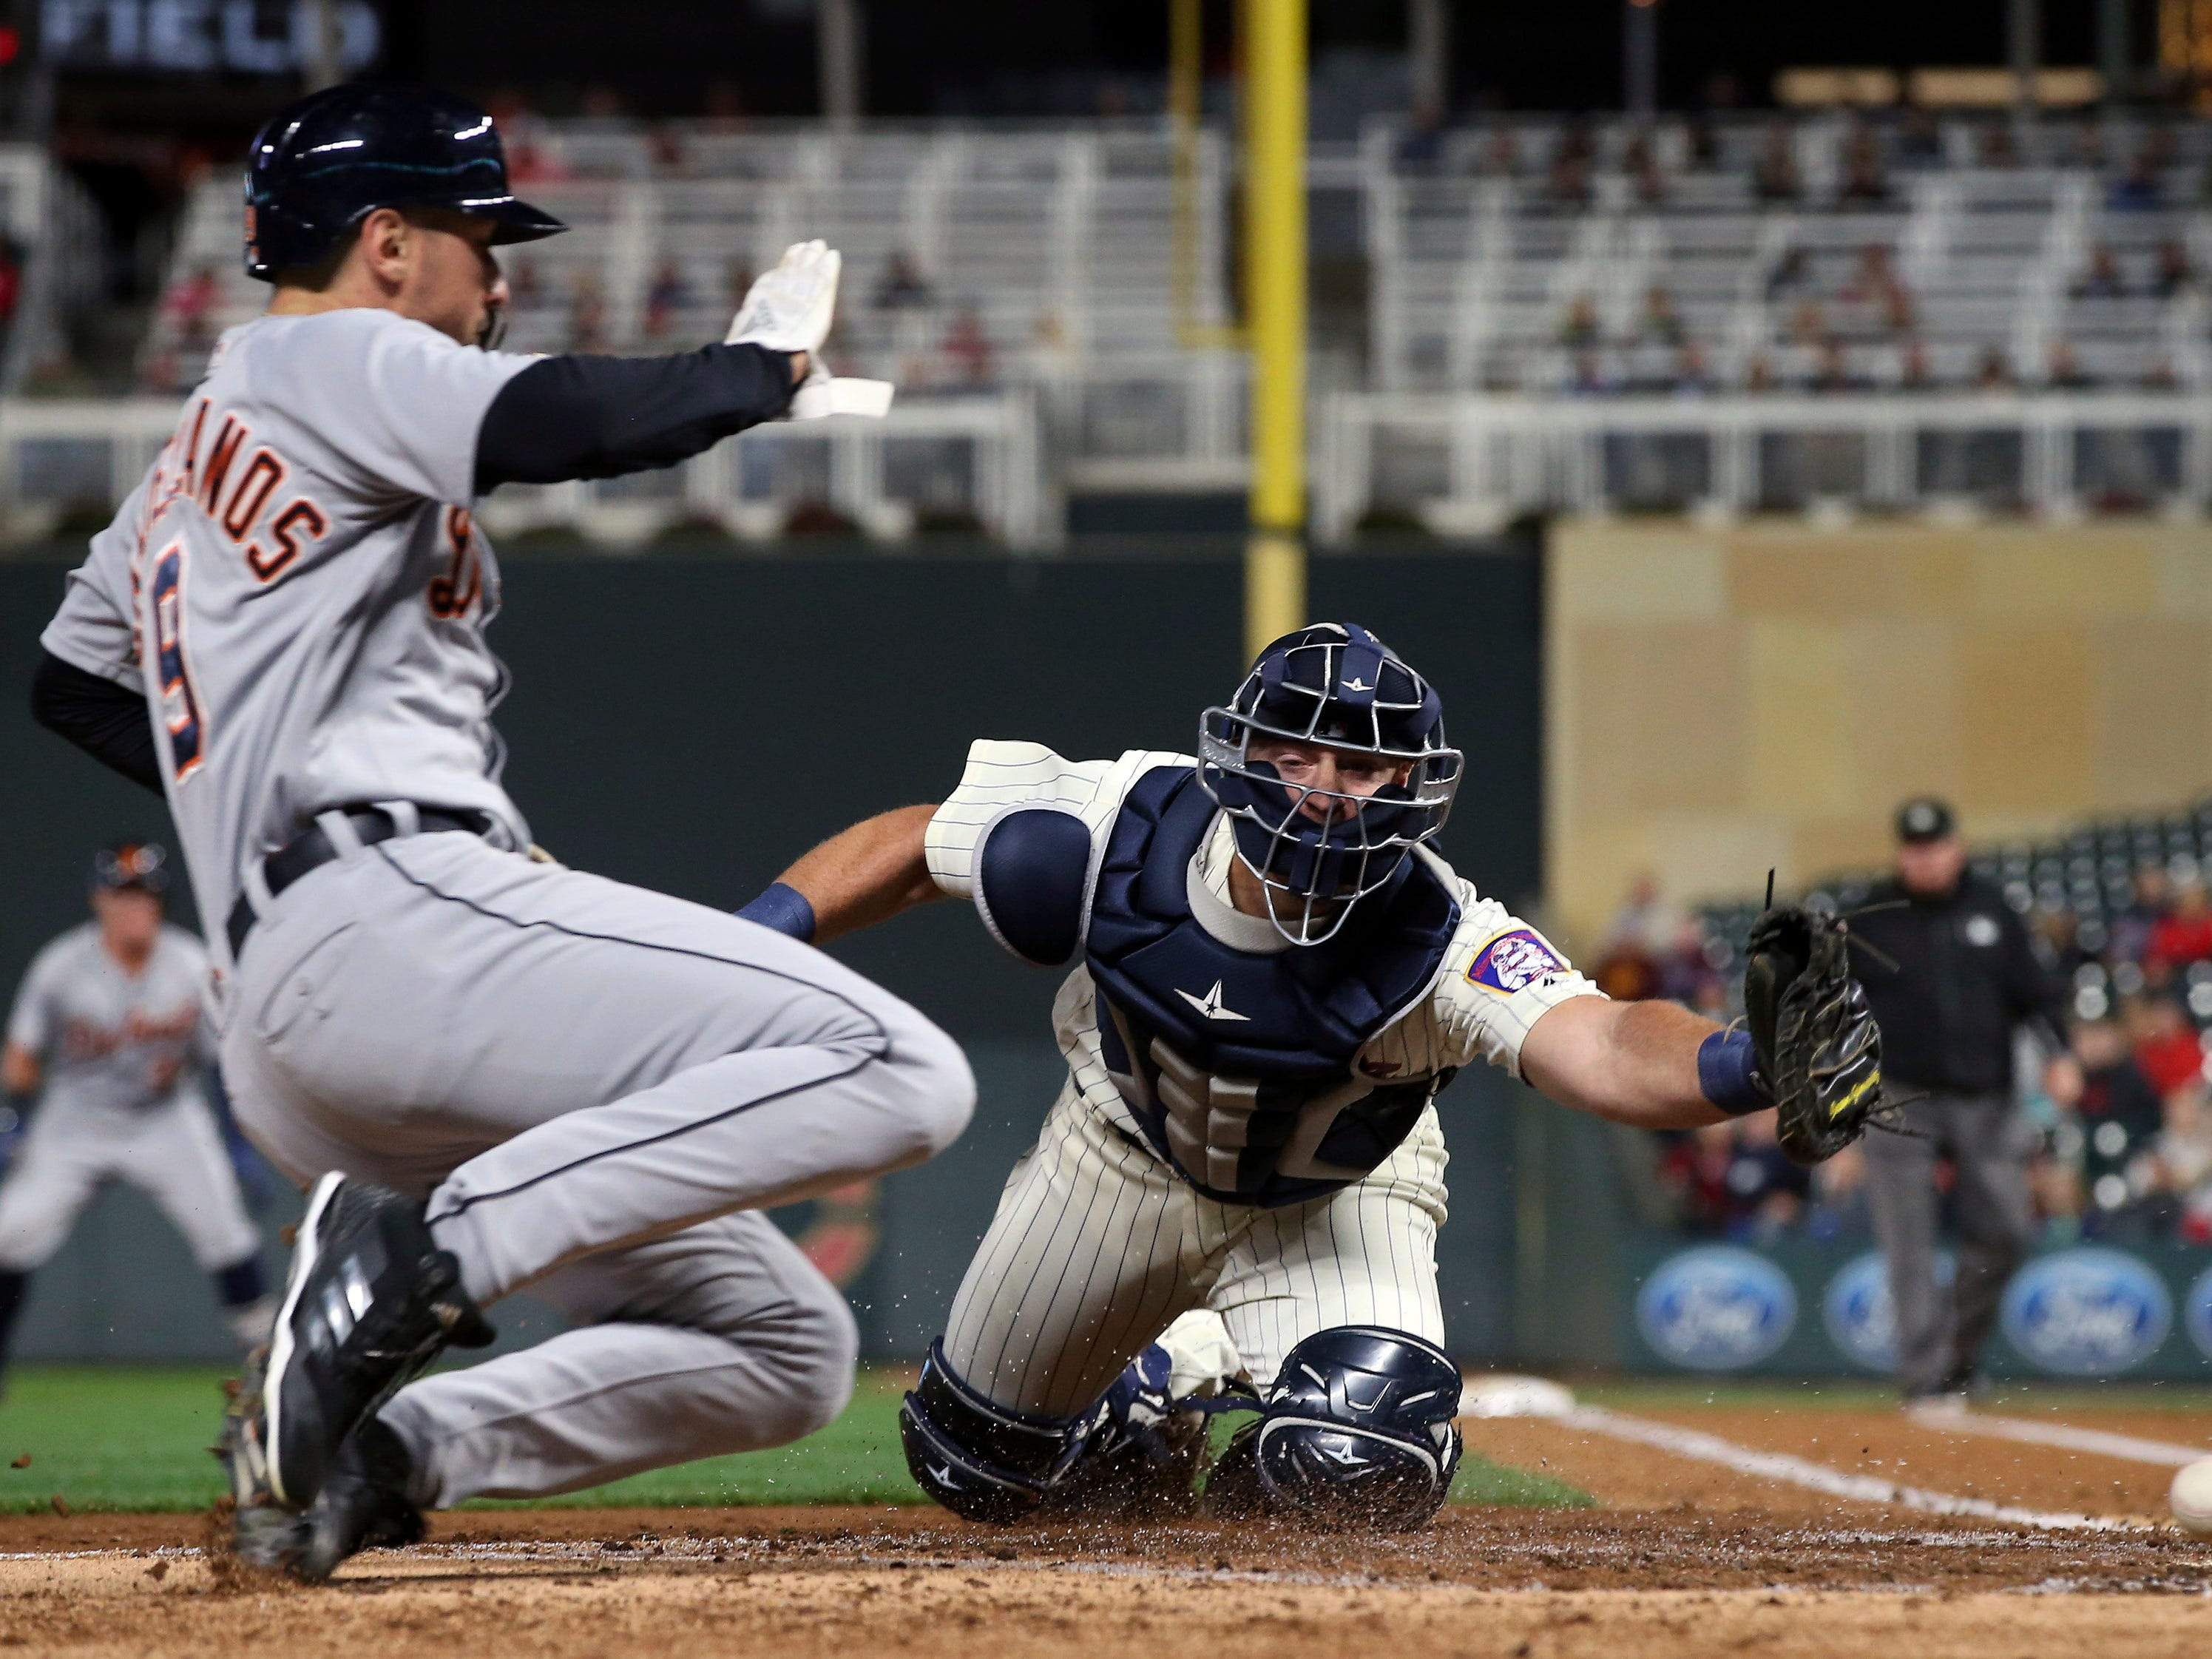 Minnesota Twins catcher Chris Gimenez, right, makes a futile reach for the throw as Detroit Tigers' Nicholas Castellanos slides in to score on a hit by James McCann during the third inning of a baseball game Wednesday, Sept. 26, 2018, in Minneapolis.